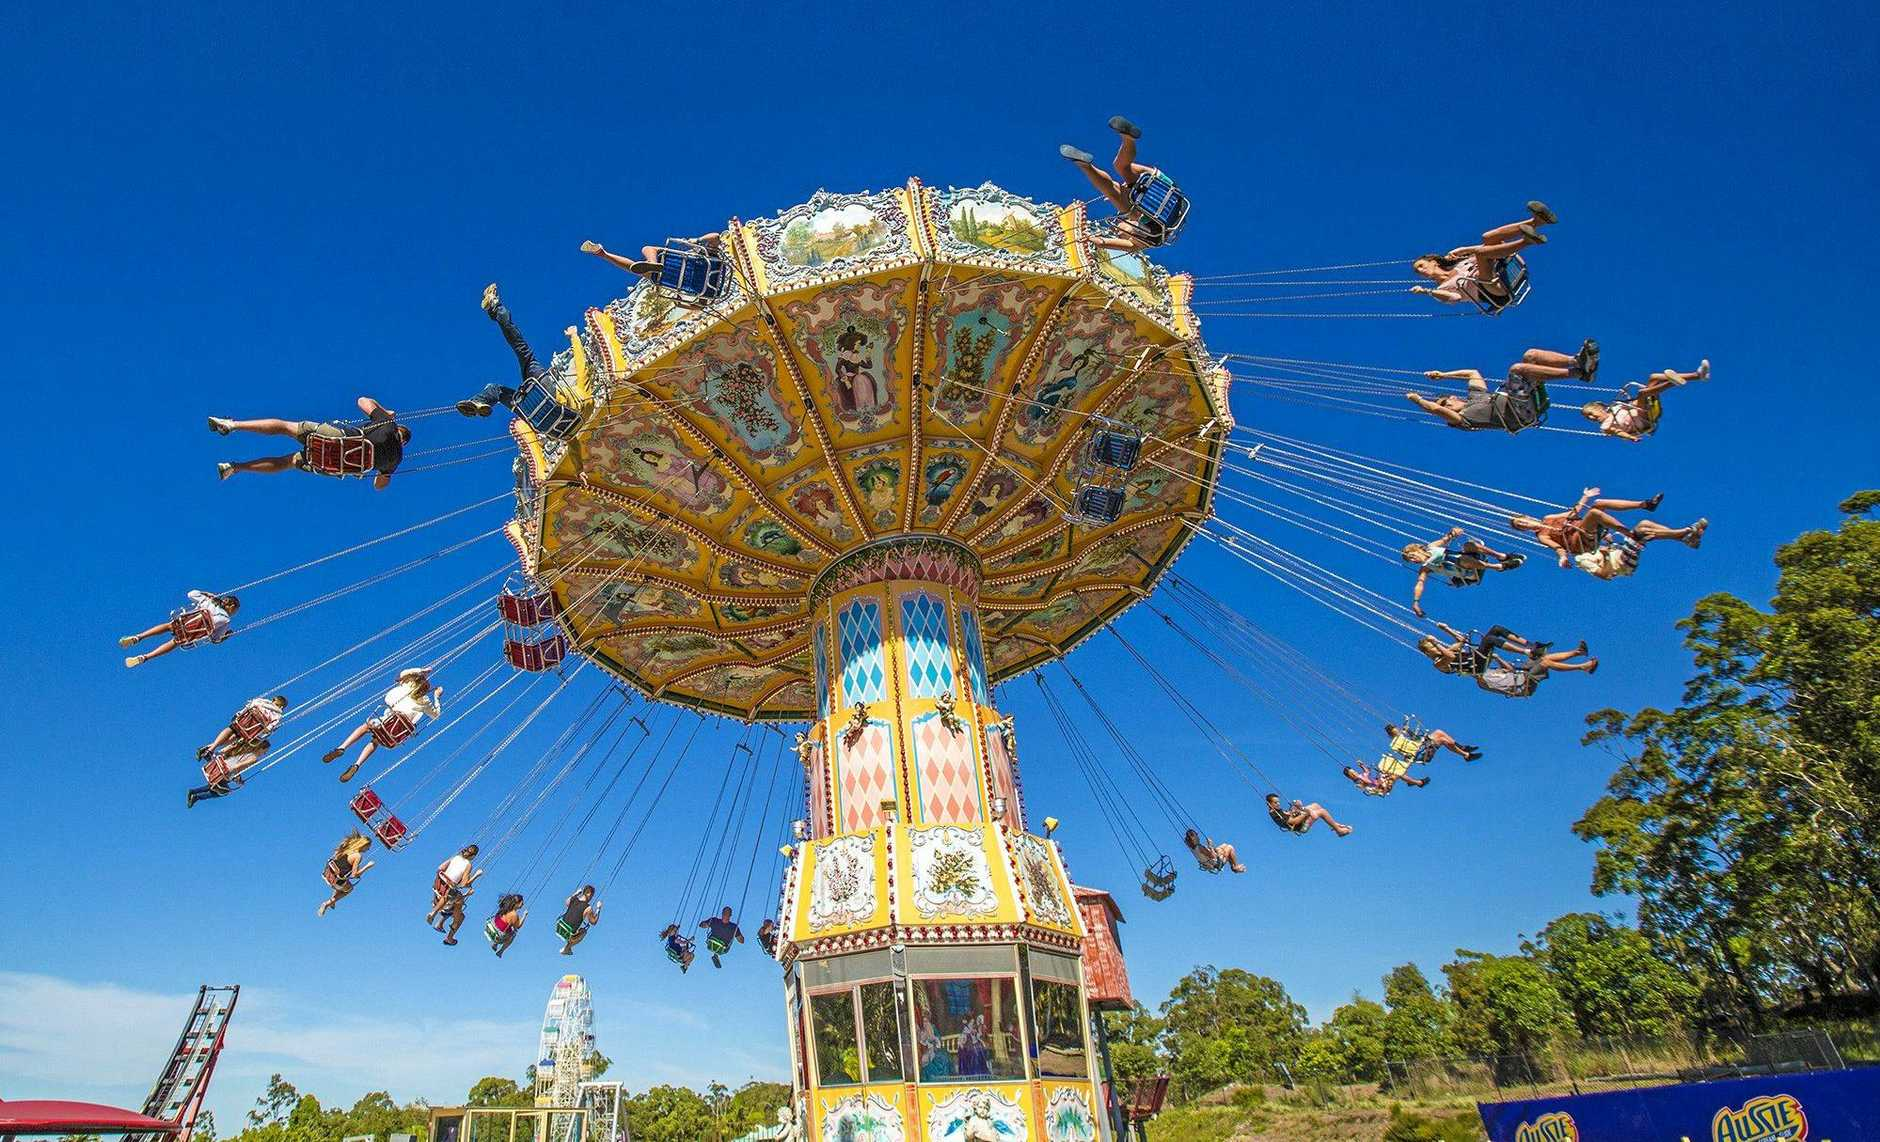 Giant swing ride at Aussie World in the Sunshine Coast